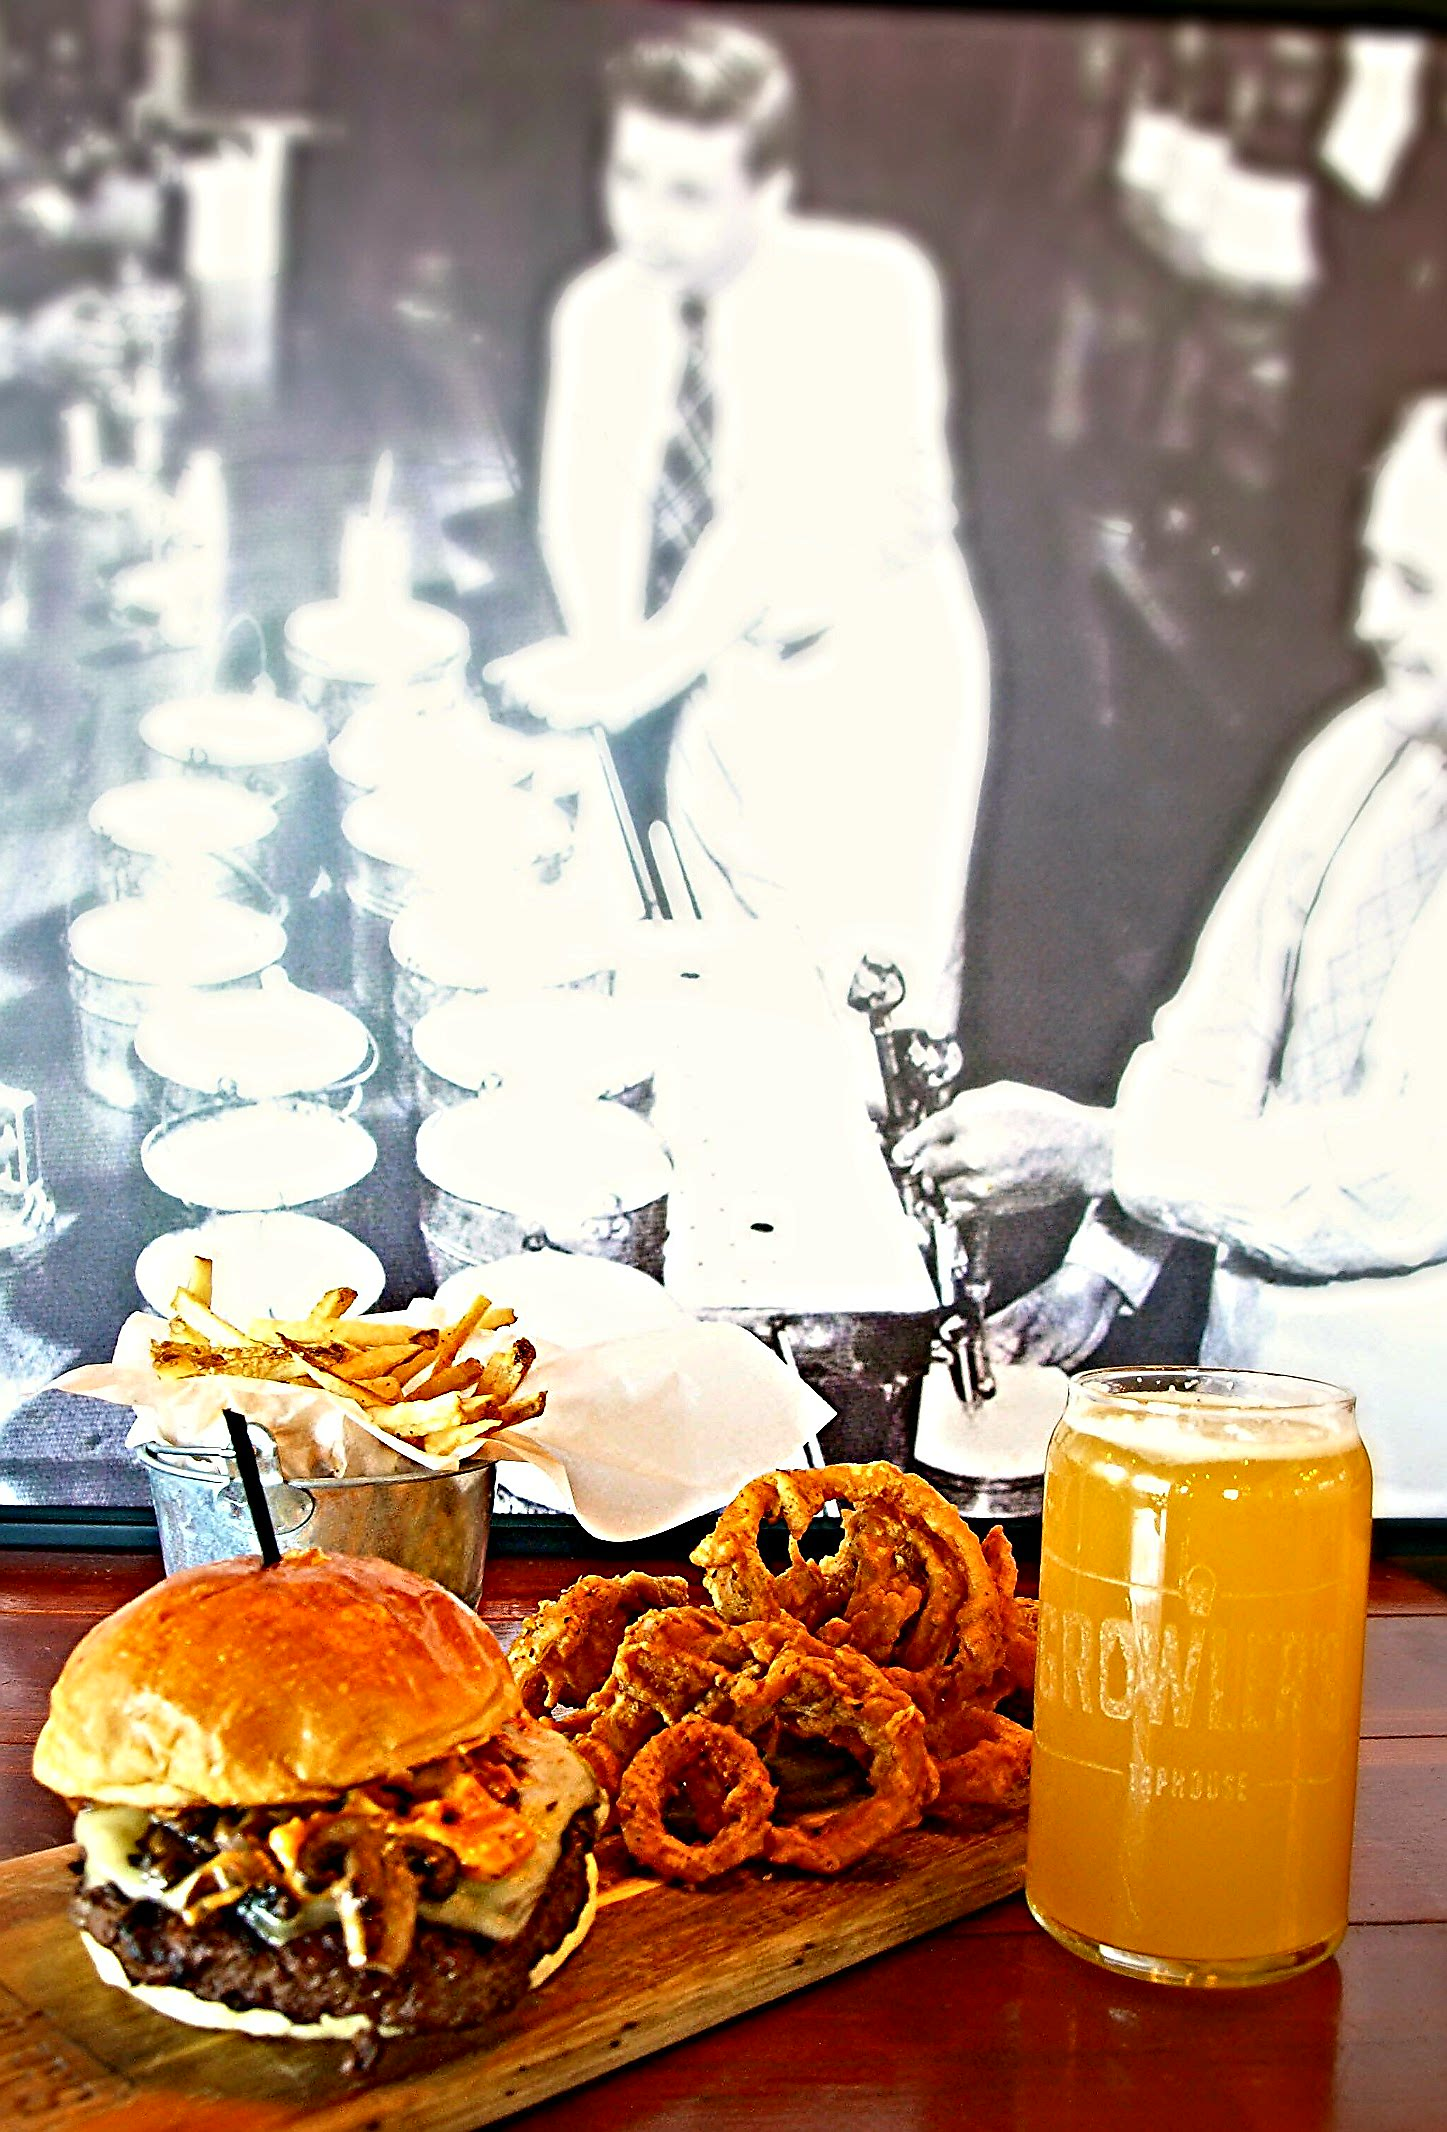 Growler's Meatwagon burger with onion rings (the best in Tucson), fries (also the best in Tucson), and a beer. Photo taken in front of a picture of bartenders after Prohibition serving beer in the original growlers.